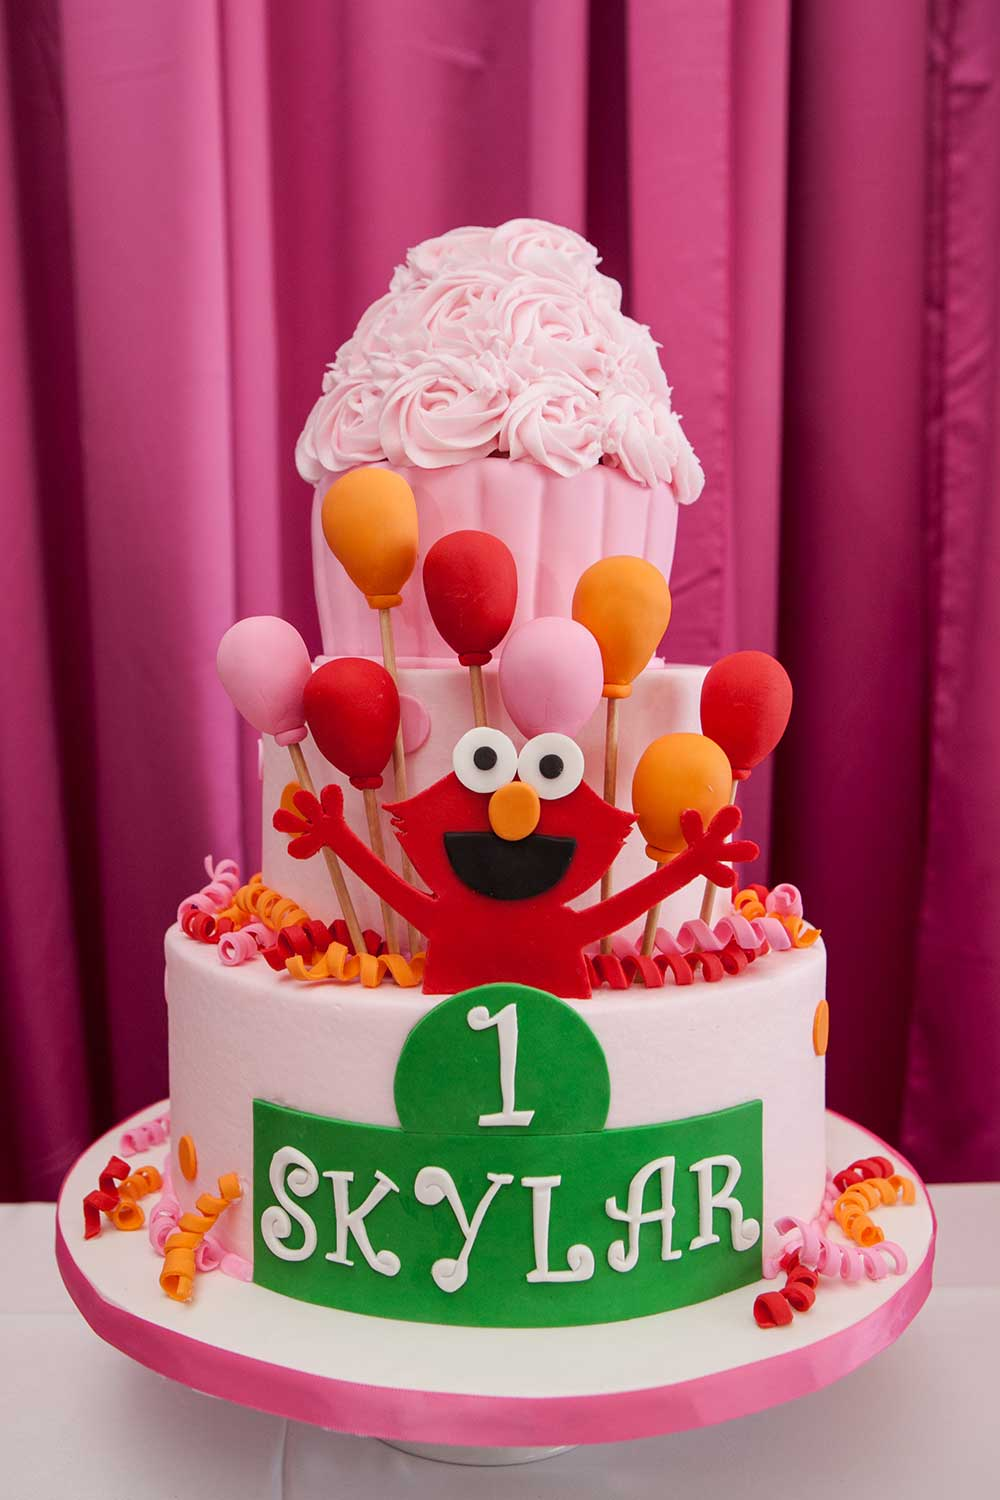 Elmo 1st birthday party ideas birthday party sesamestreet - Elmo Themed Birthday Cake